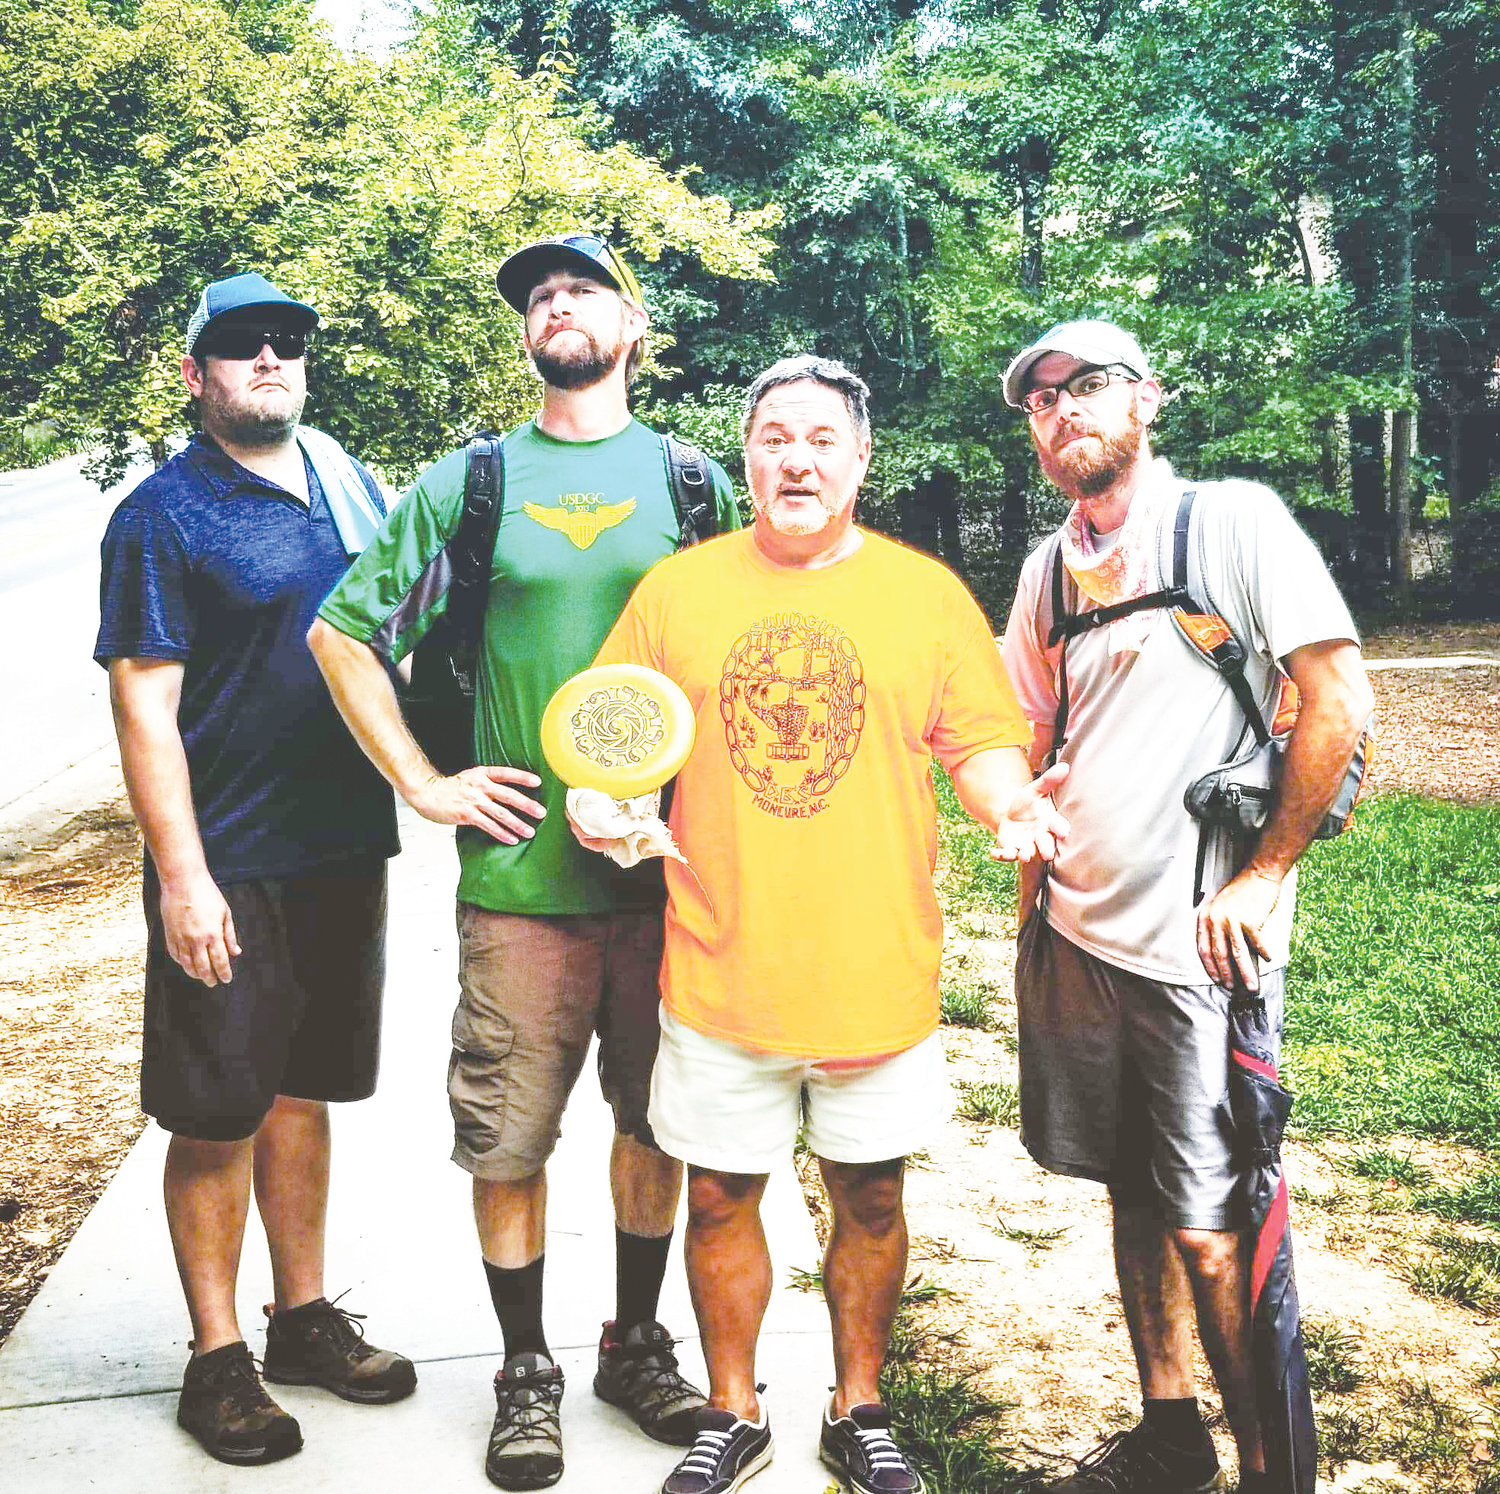 The 'King of Kentwood' (center with disc) is one of the winningest disc golfers in North Carolina, though many were won outside of the Professional Disc Golf Association. Here he's joined by T-Baby, Sethro and Jefferson as they finish up another amazing round.